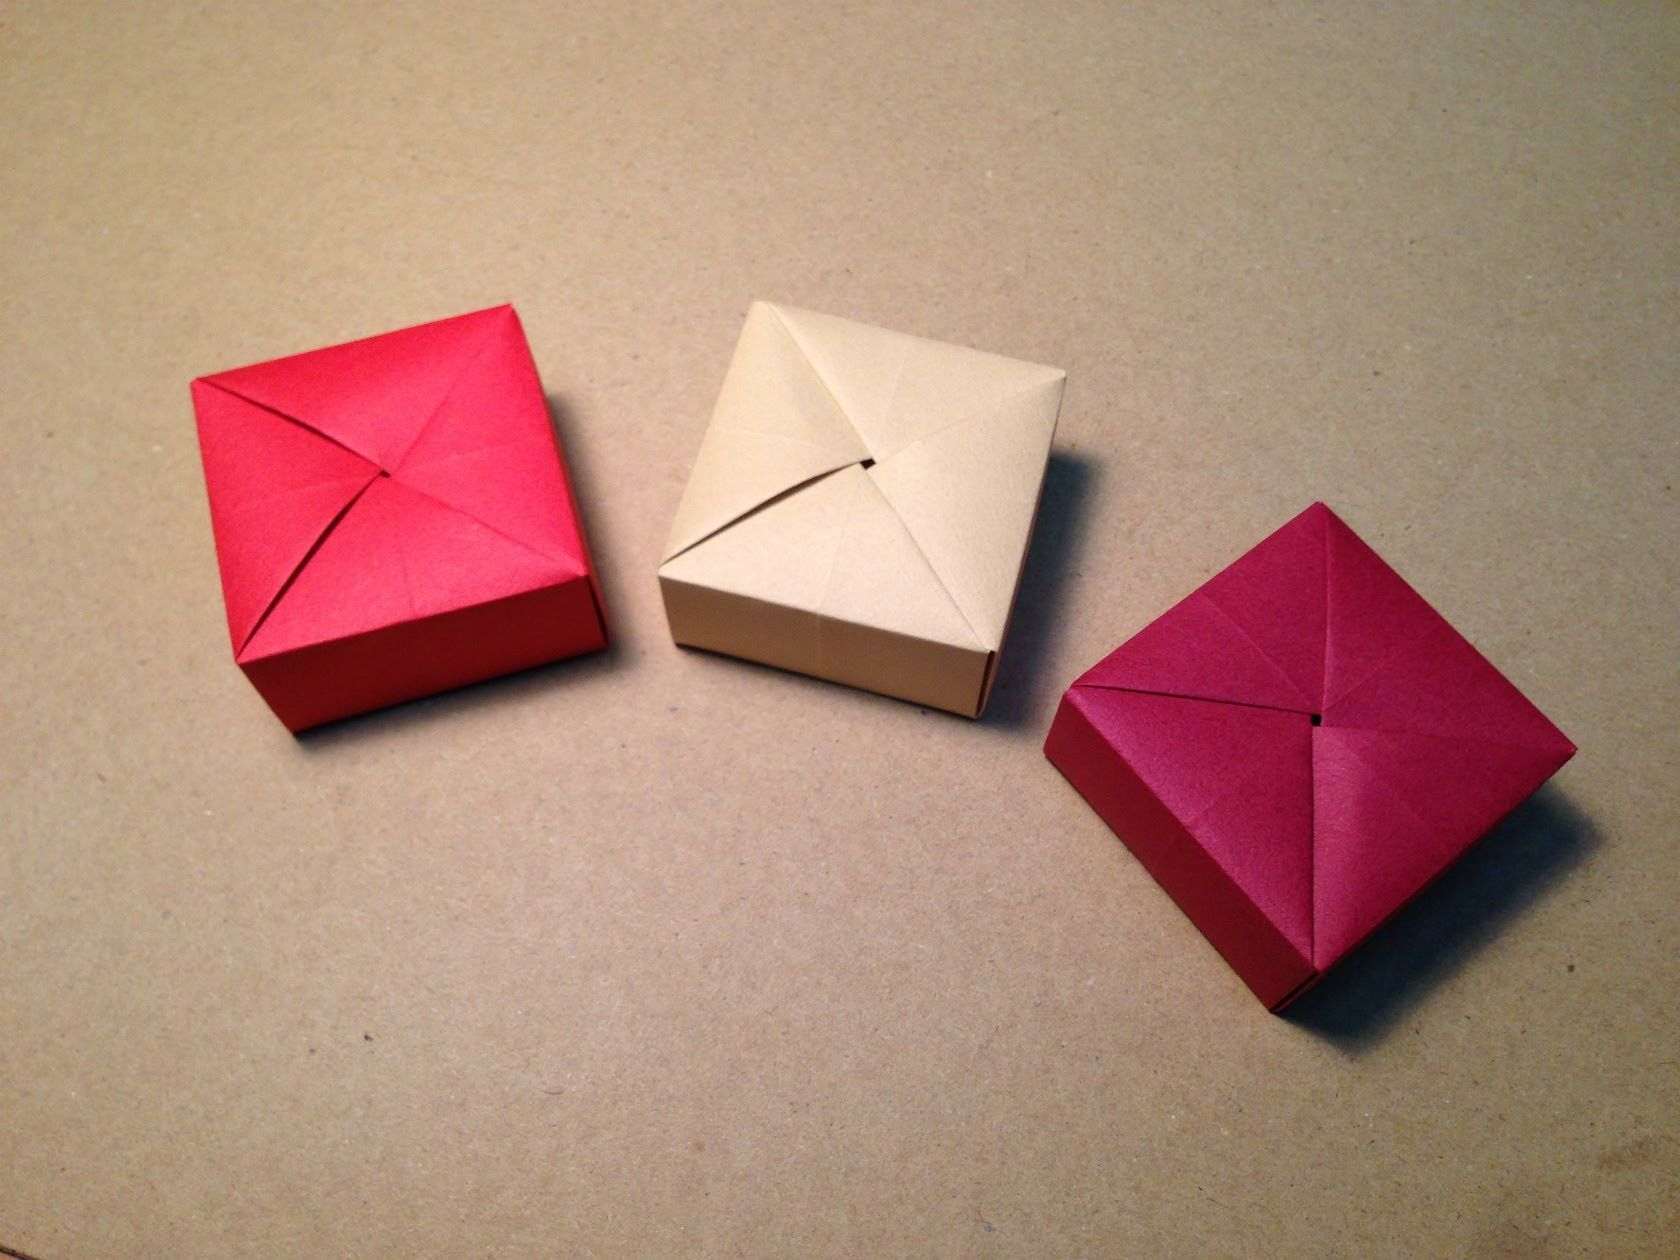 Origami bamboo letterfold folding instructions - How To Make An Origami Gift Box With One Sheet Of Paper Difficulty Level